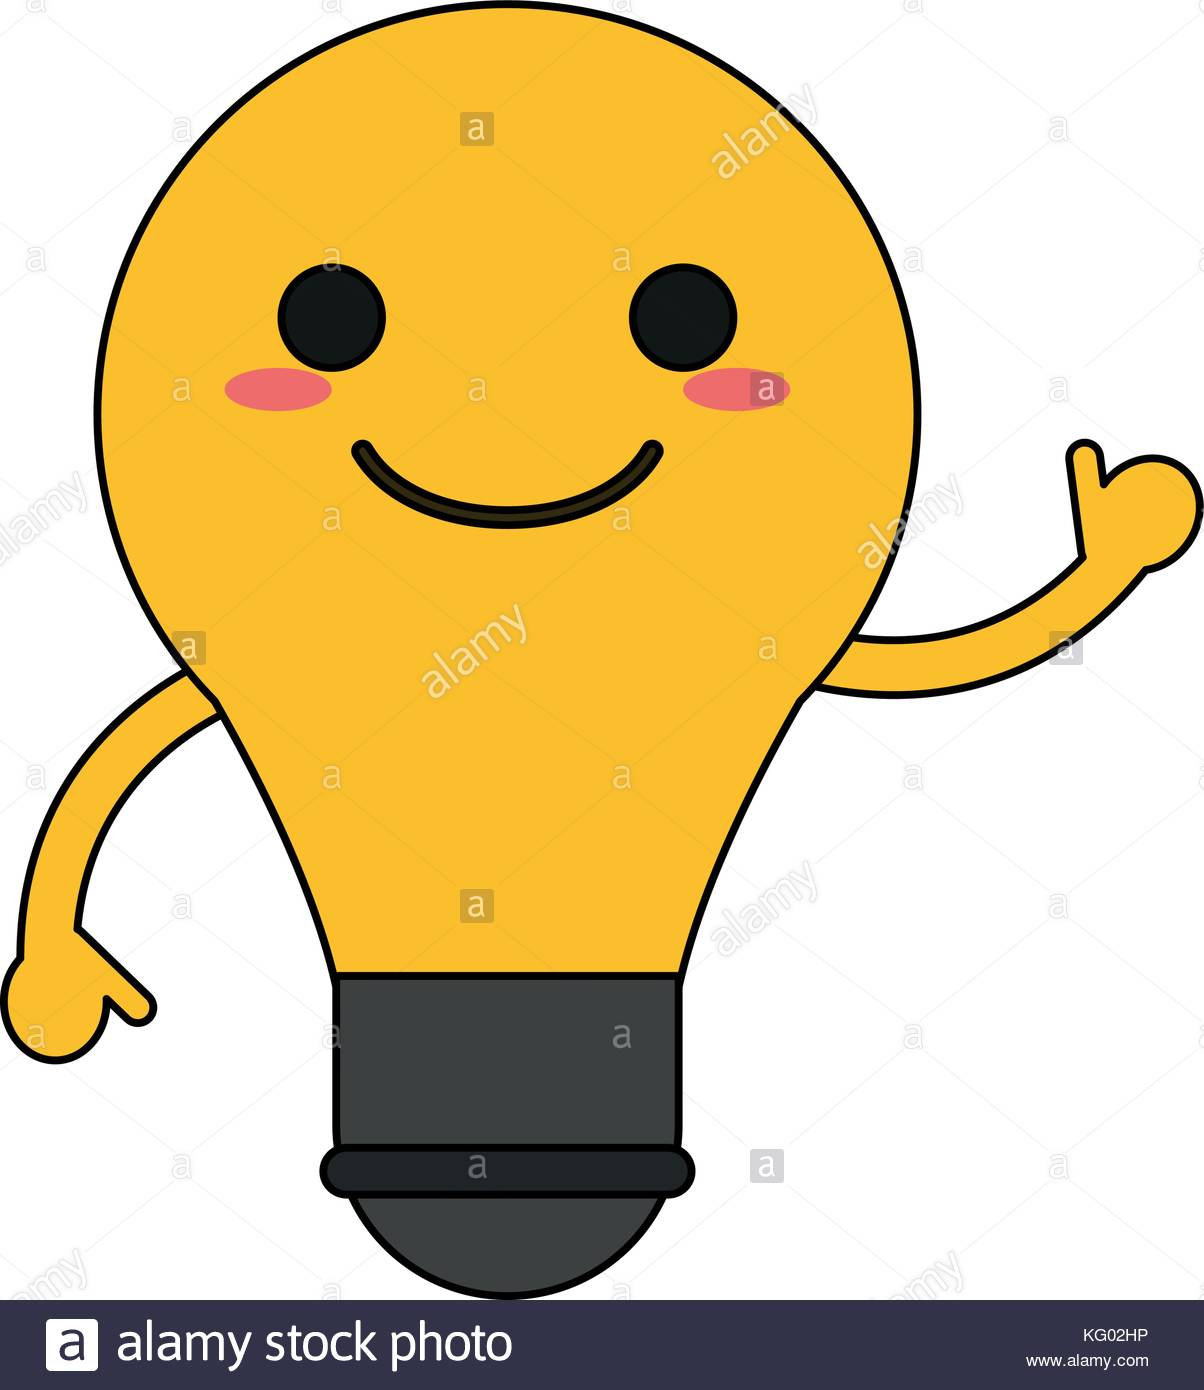 1204x1390 Happy Light Bulb Cartoon Stock Vector Images